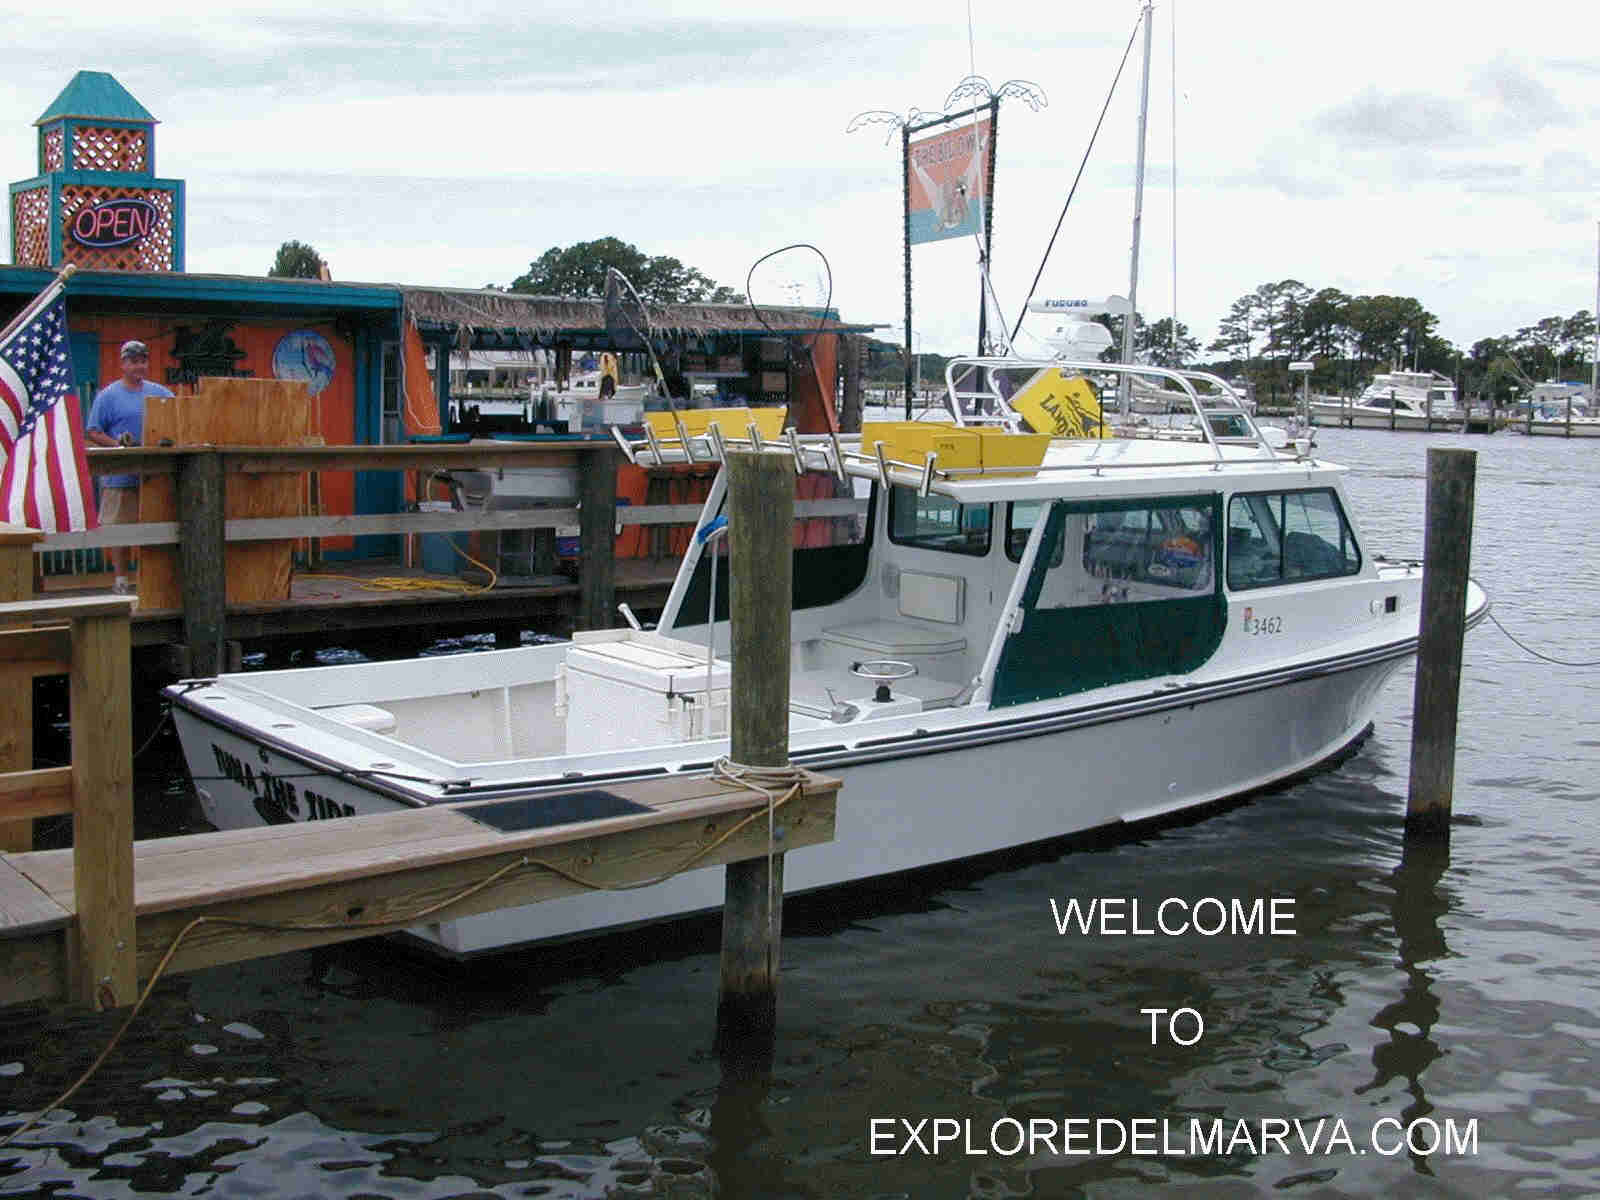 Explore Delmarva - Tuna The Tide Charter Sevice - photo#1